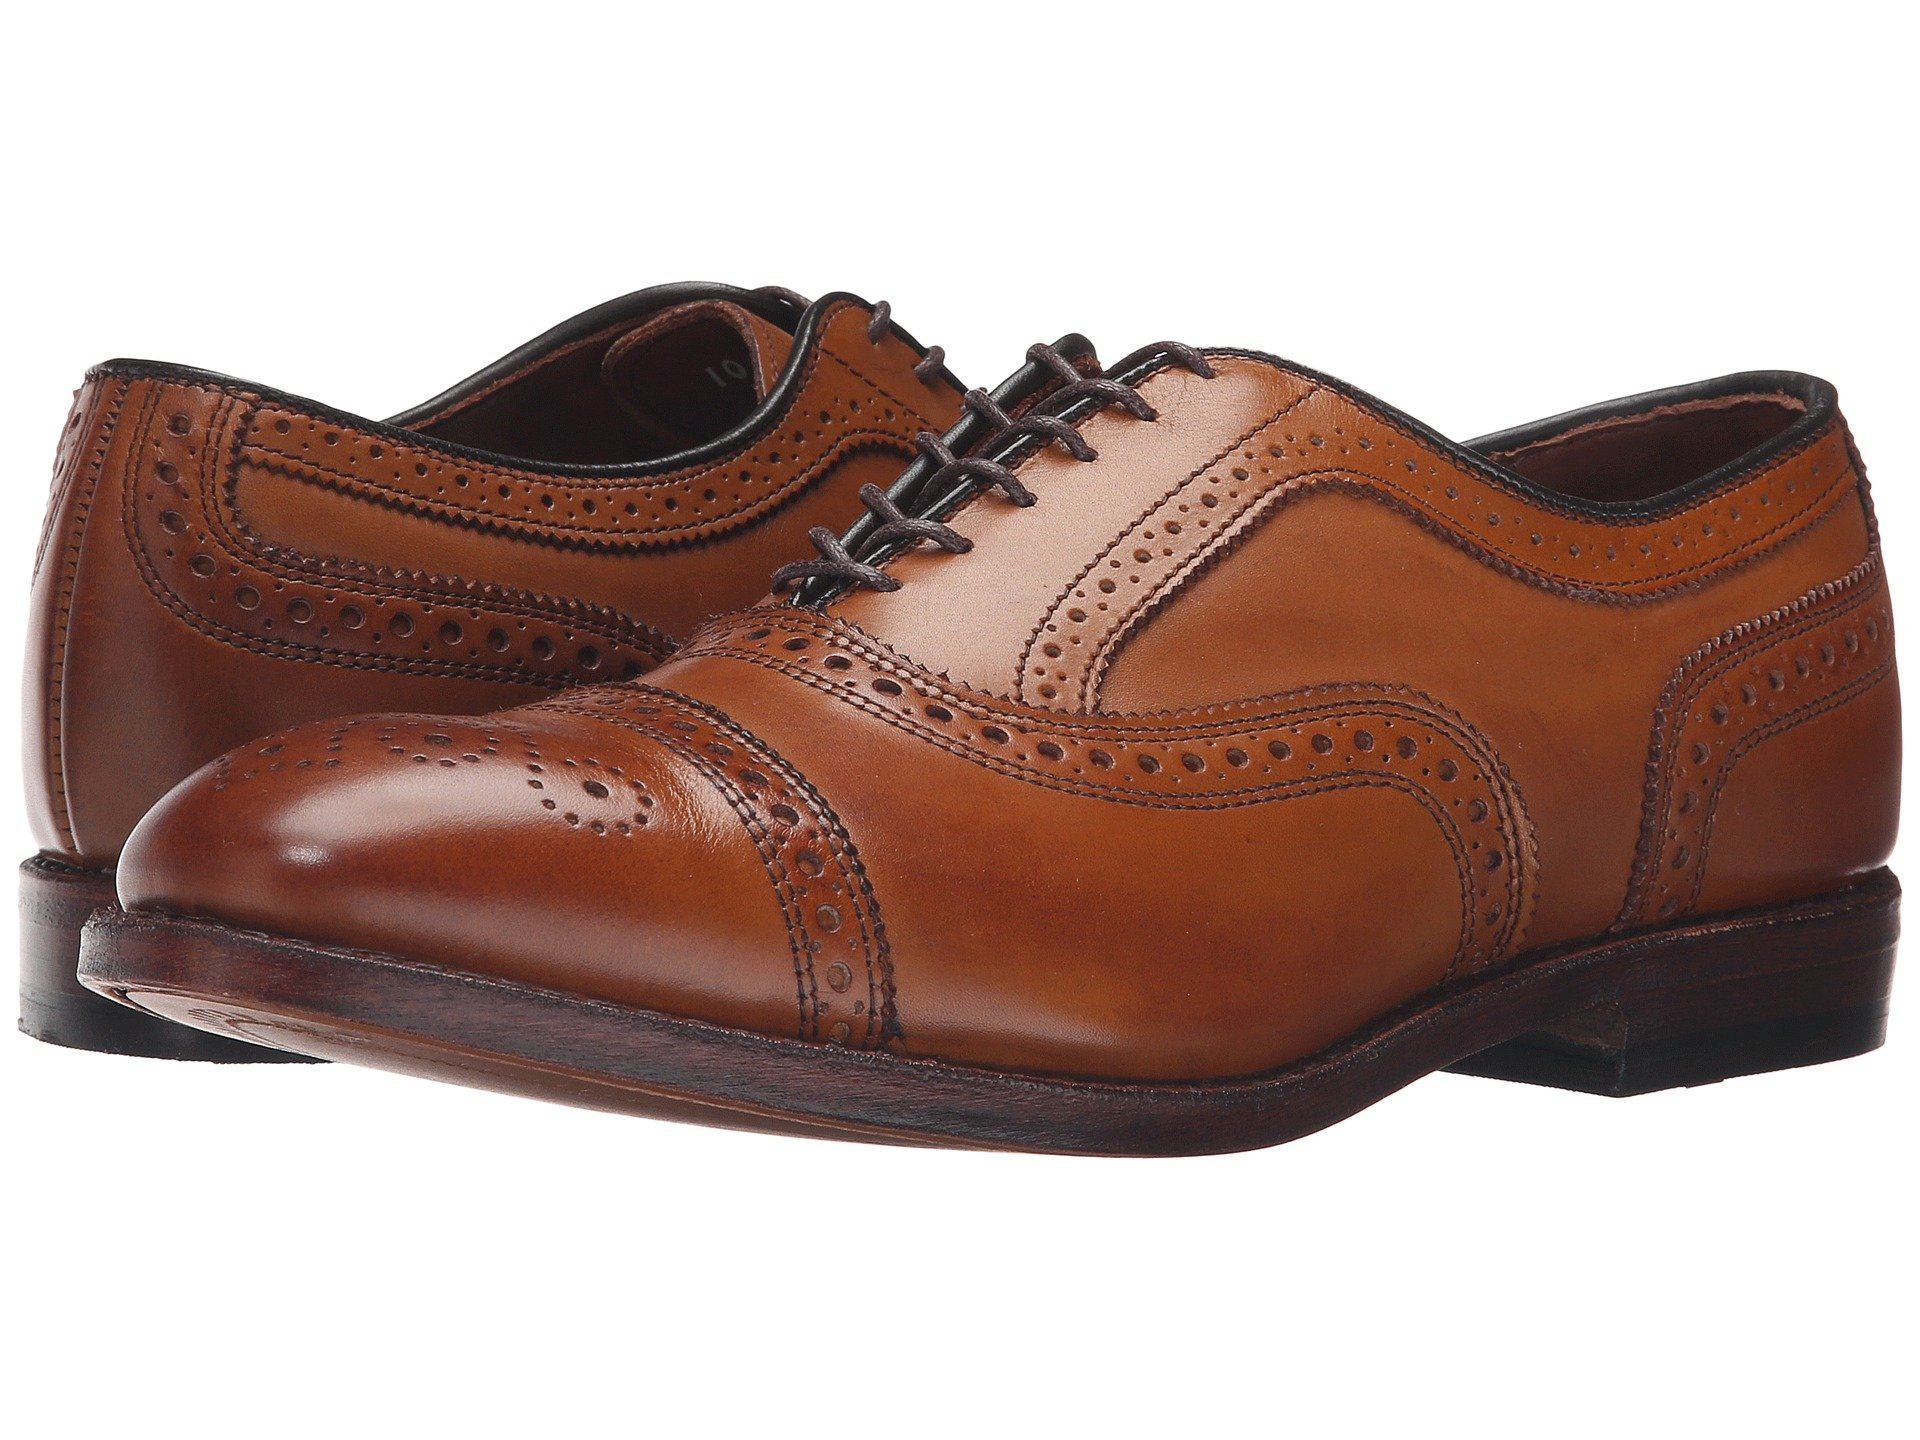 allen edmonds strand in cognac - ultimate guide to buying, wearing, and caring for brown dress shoes